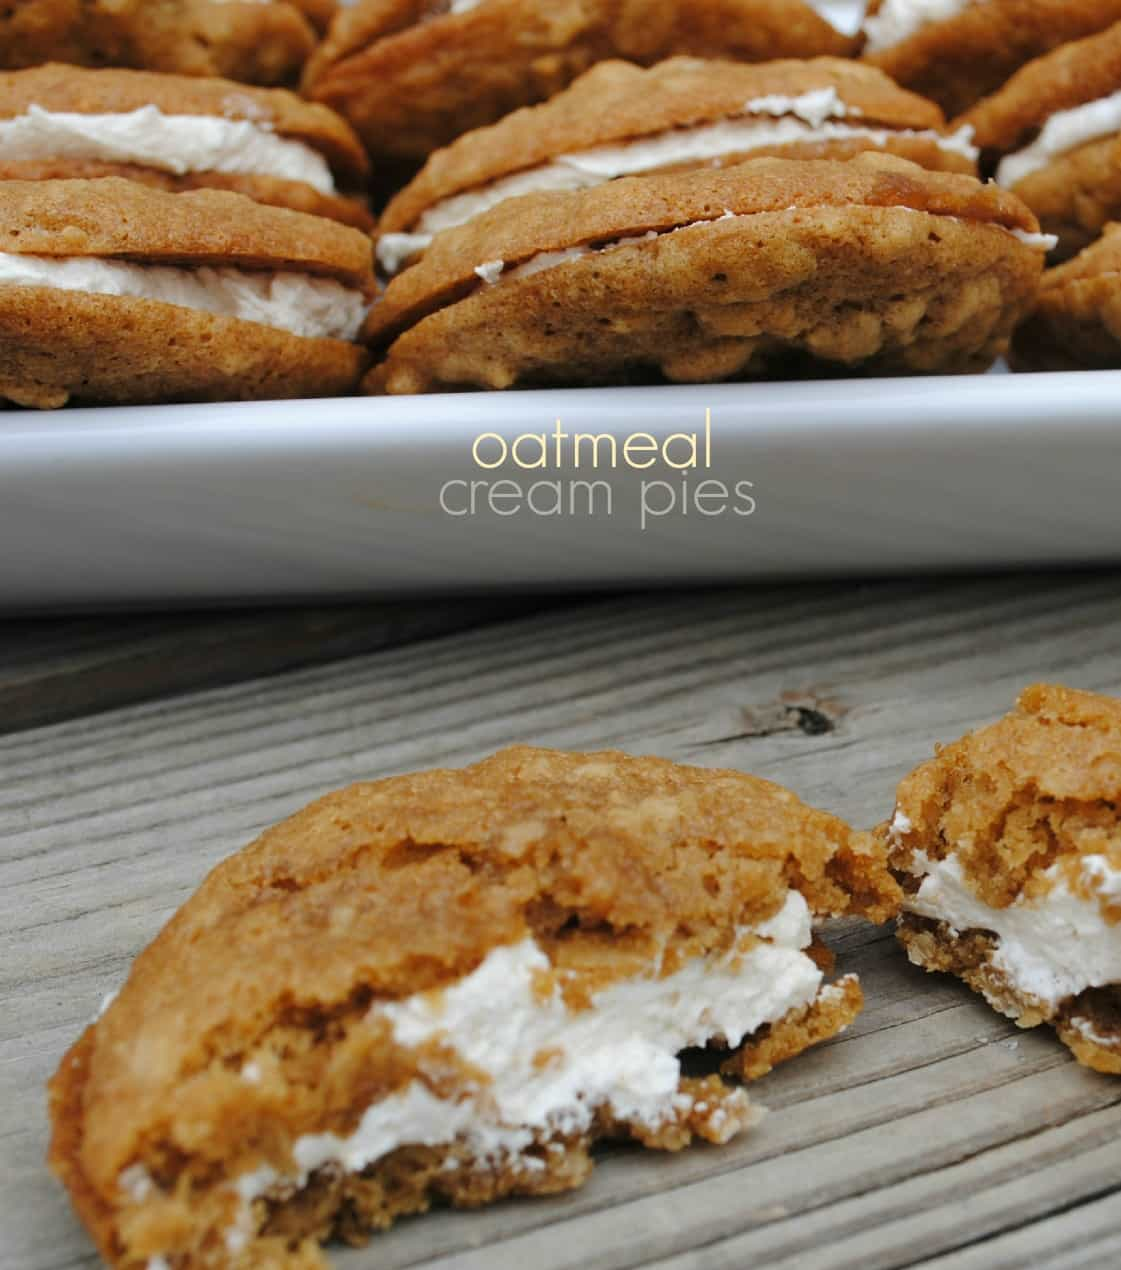 oatmeal-cream-pies.jpg